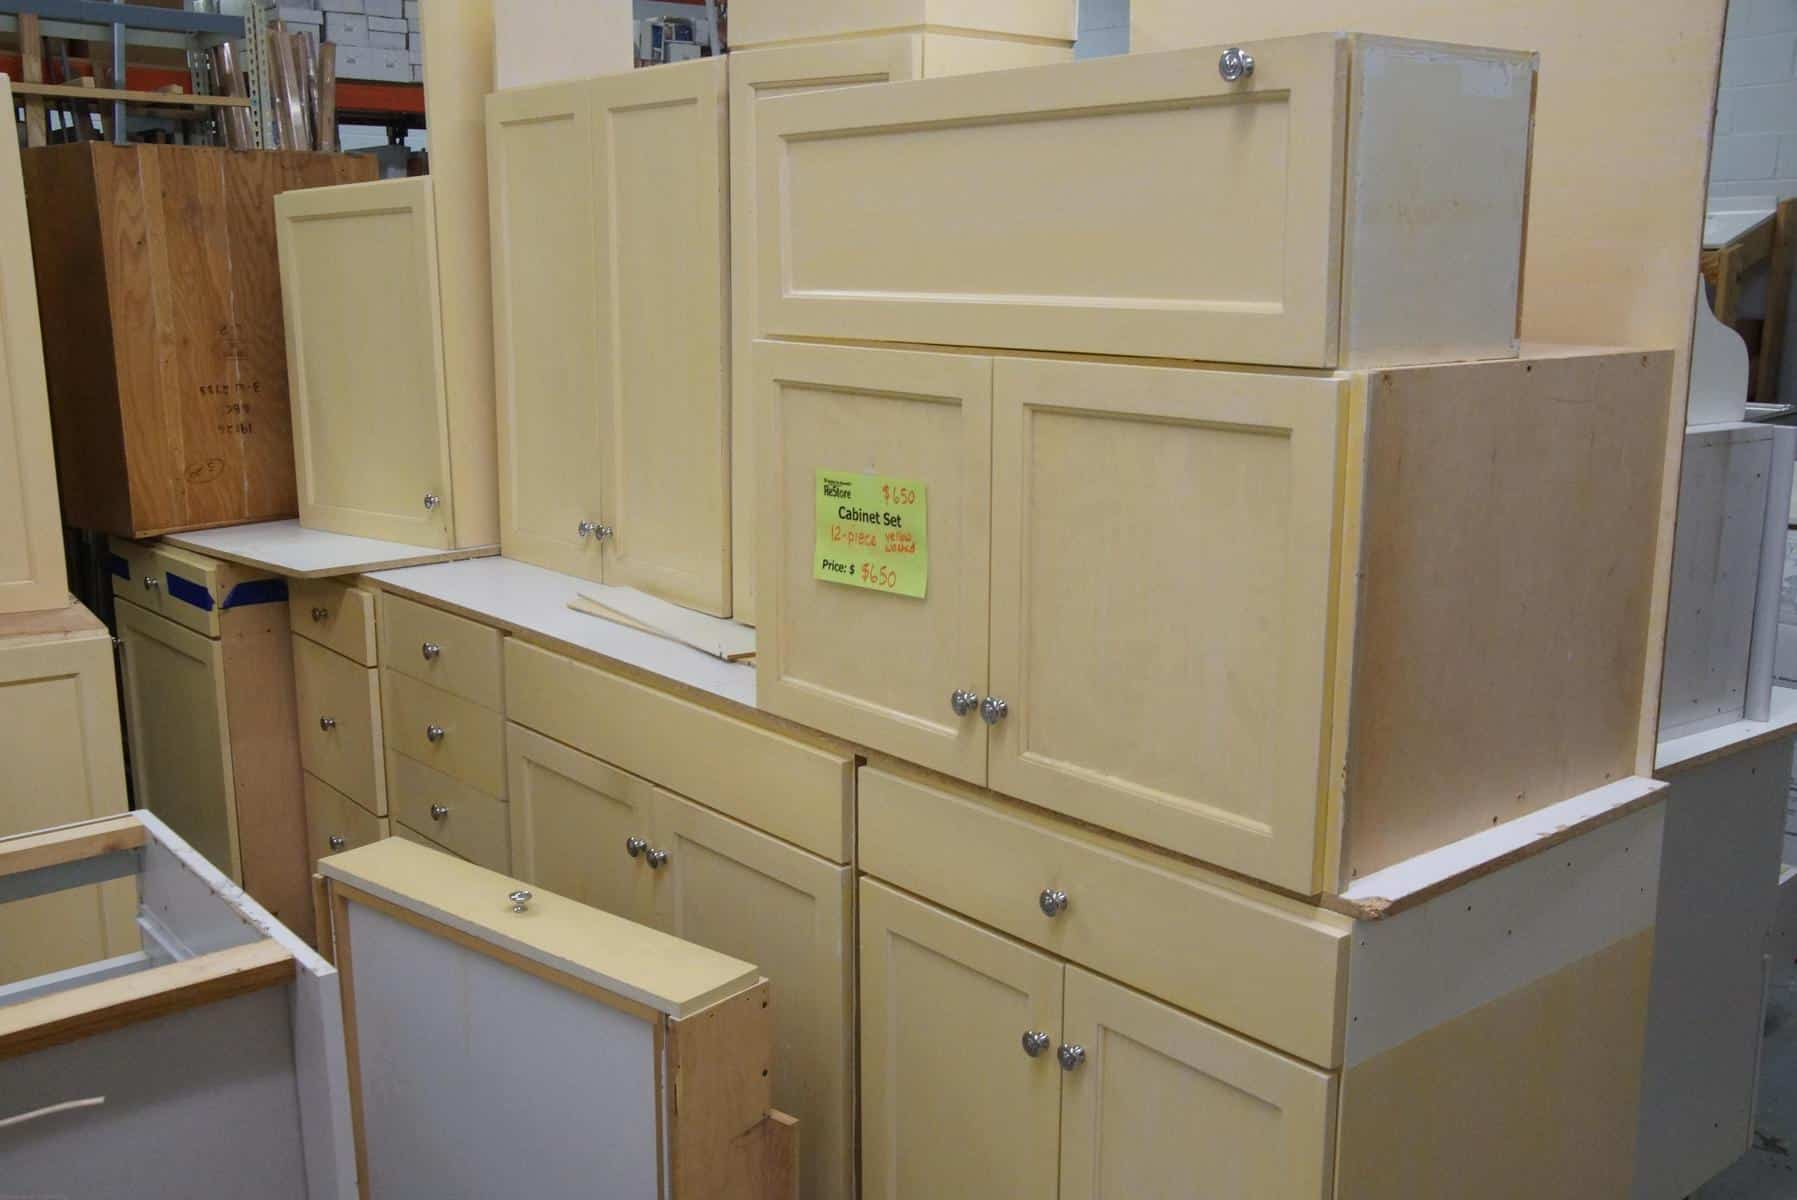 restore kitchen cabinets cost of habitat for humanity